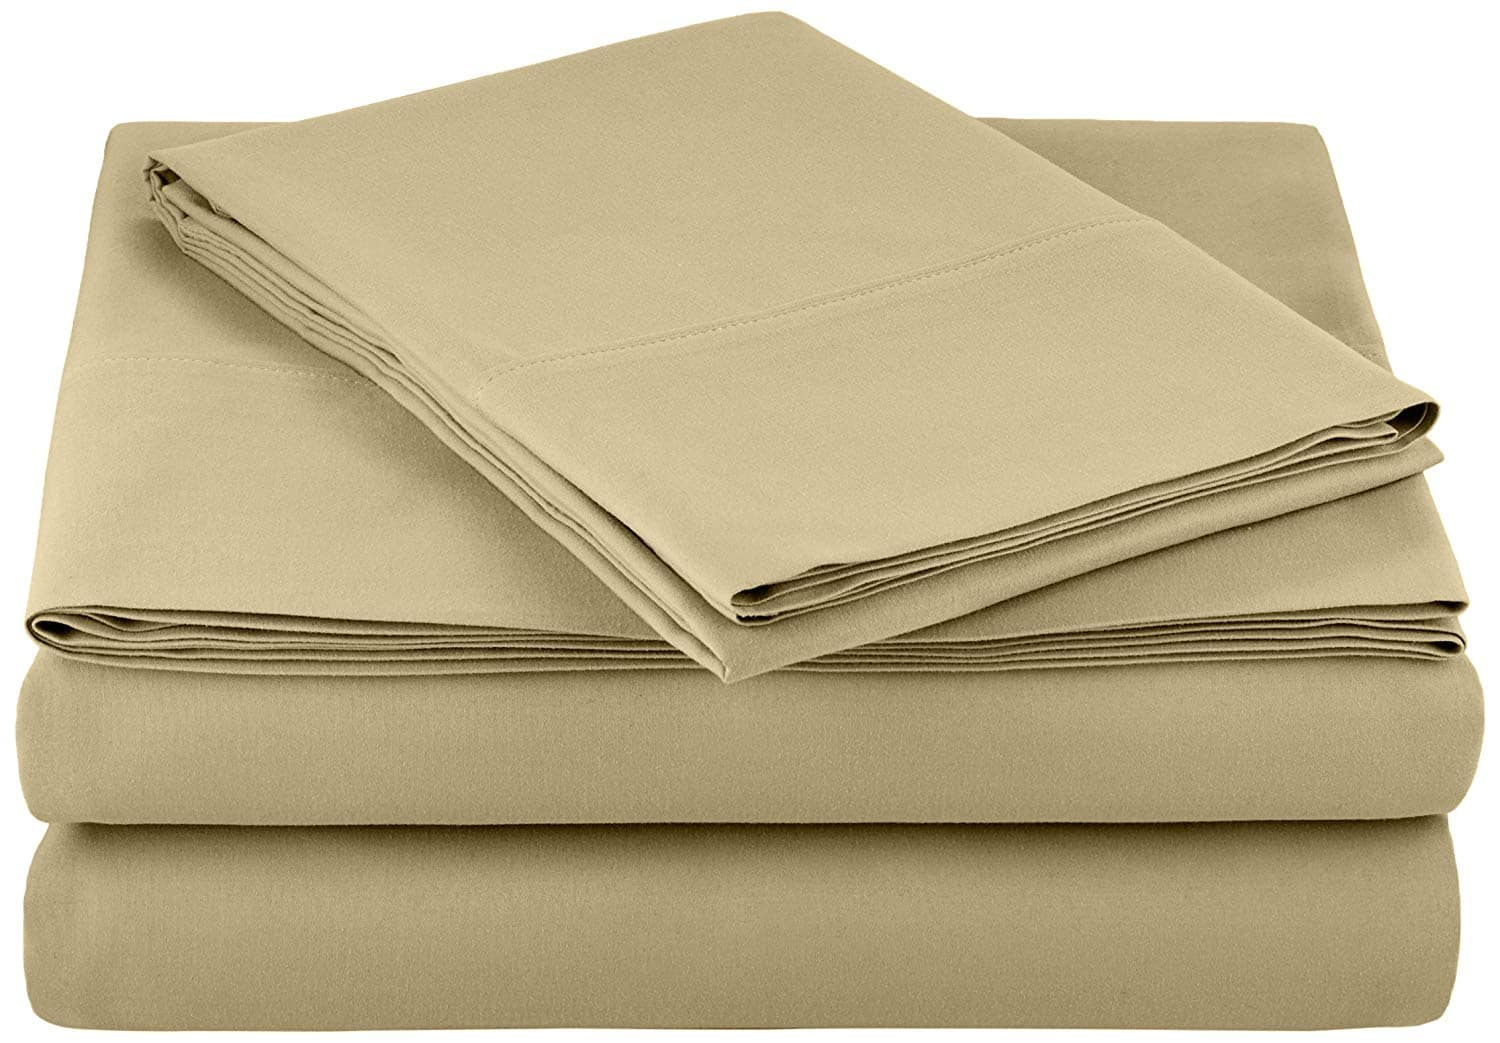 AmazonBasics Microfiber Sheet Set(Twin, Olive) for $8.94 @Amazon